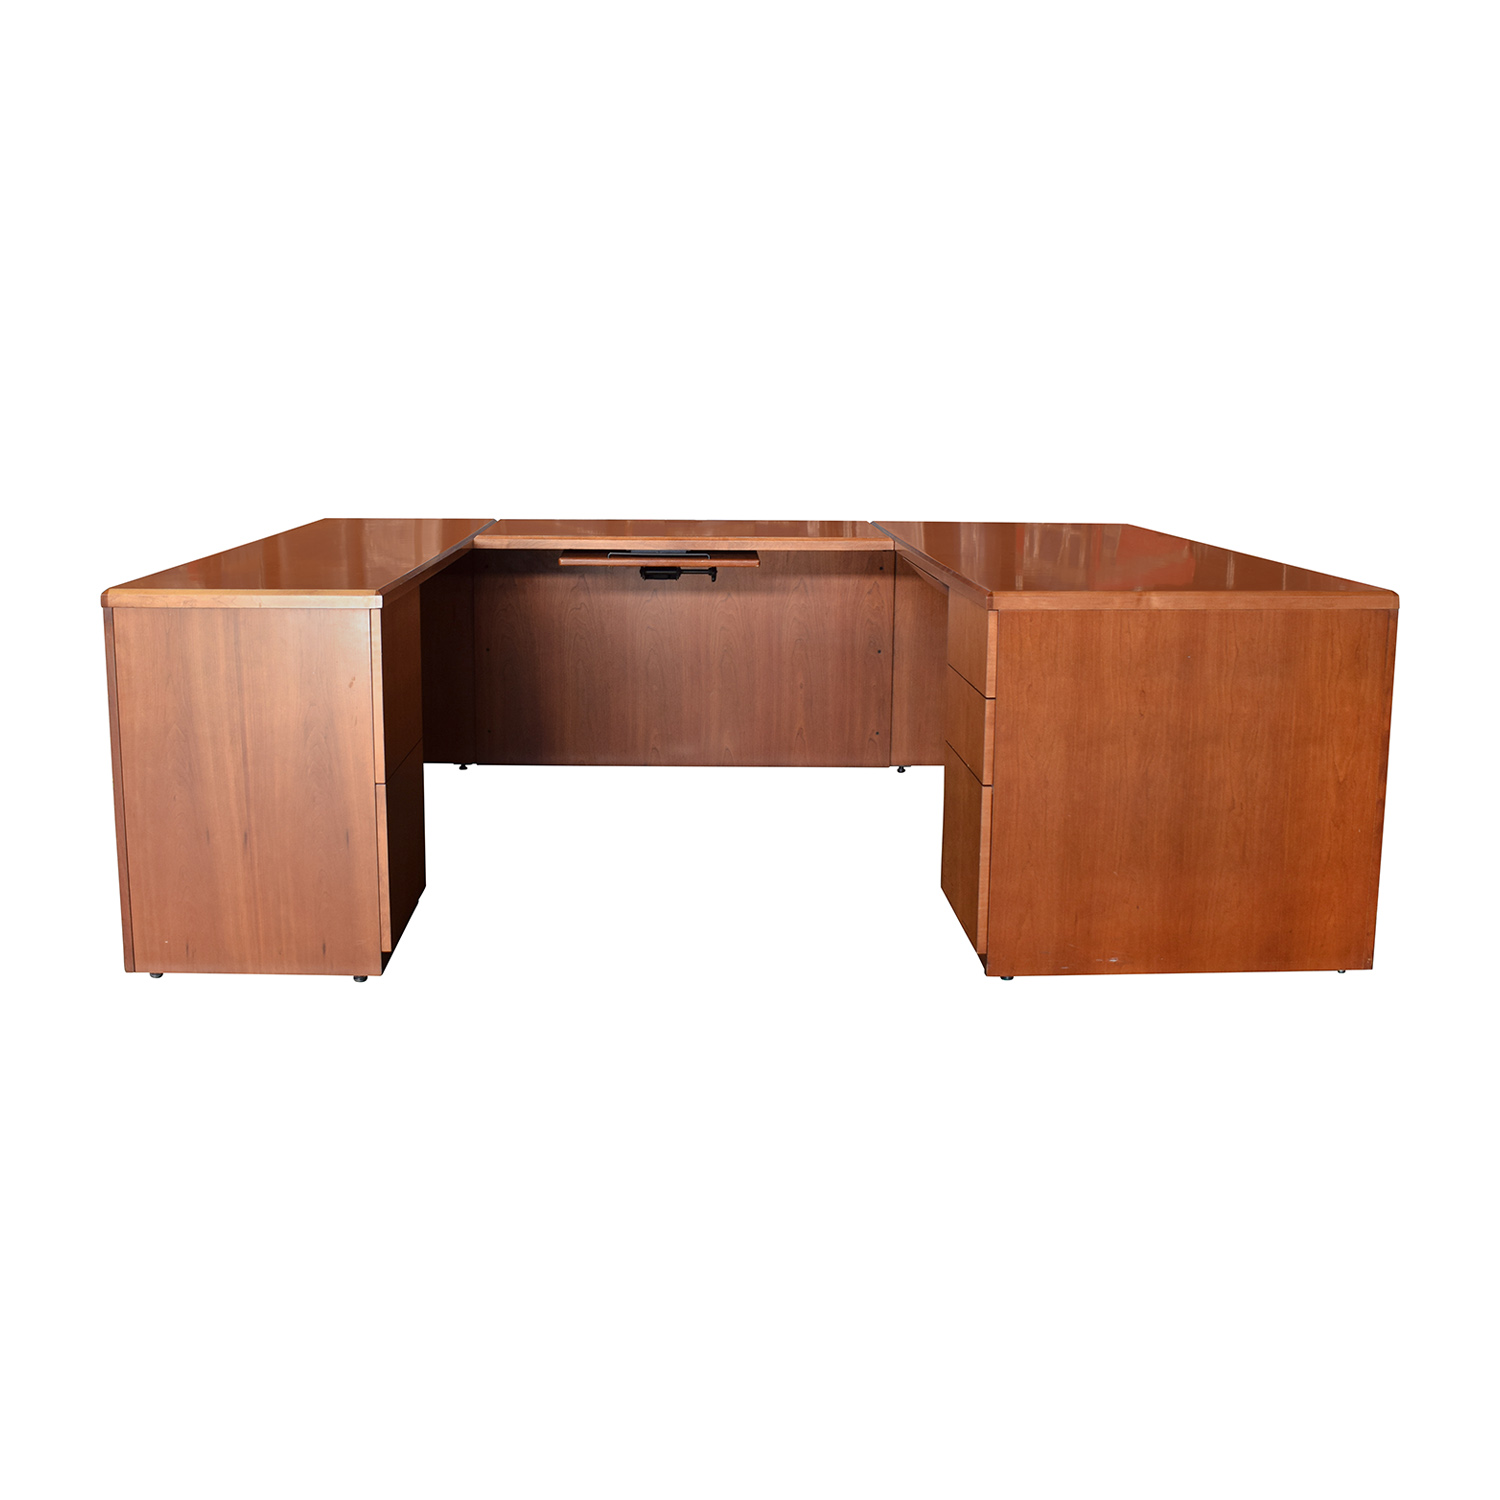 buy Gunlocke Company Gunlocke Company U-Shaped Desk online